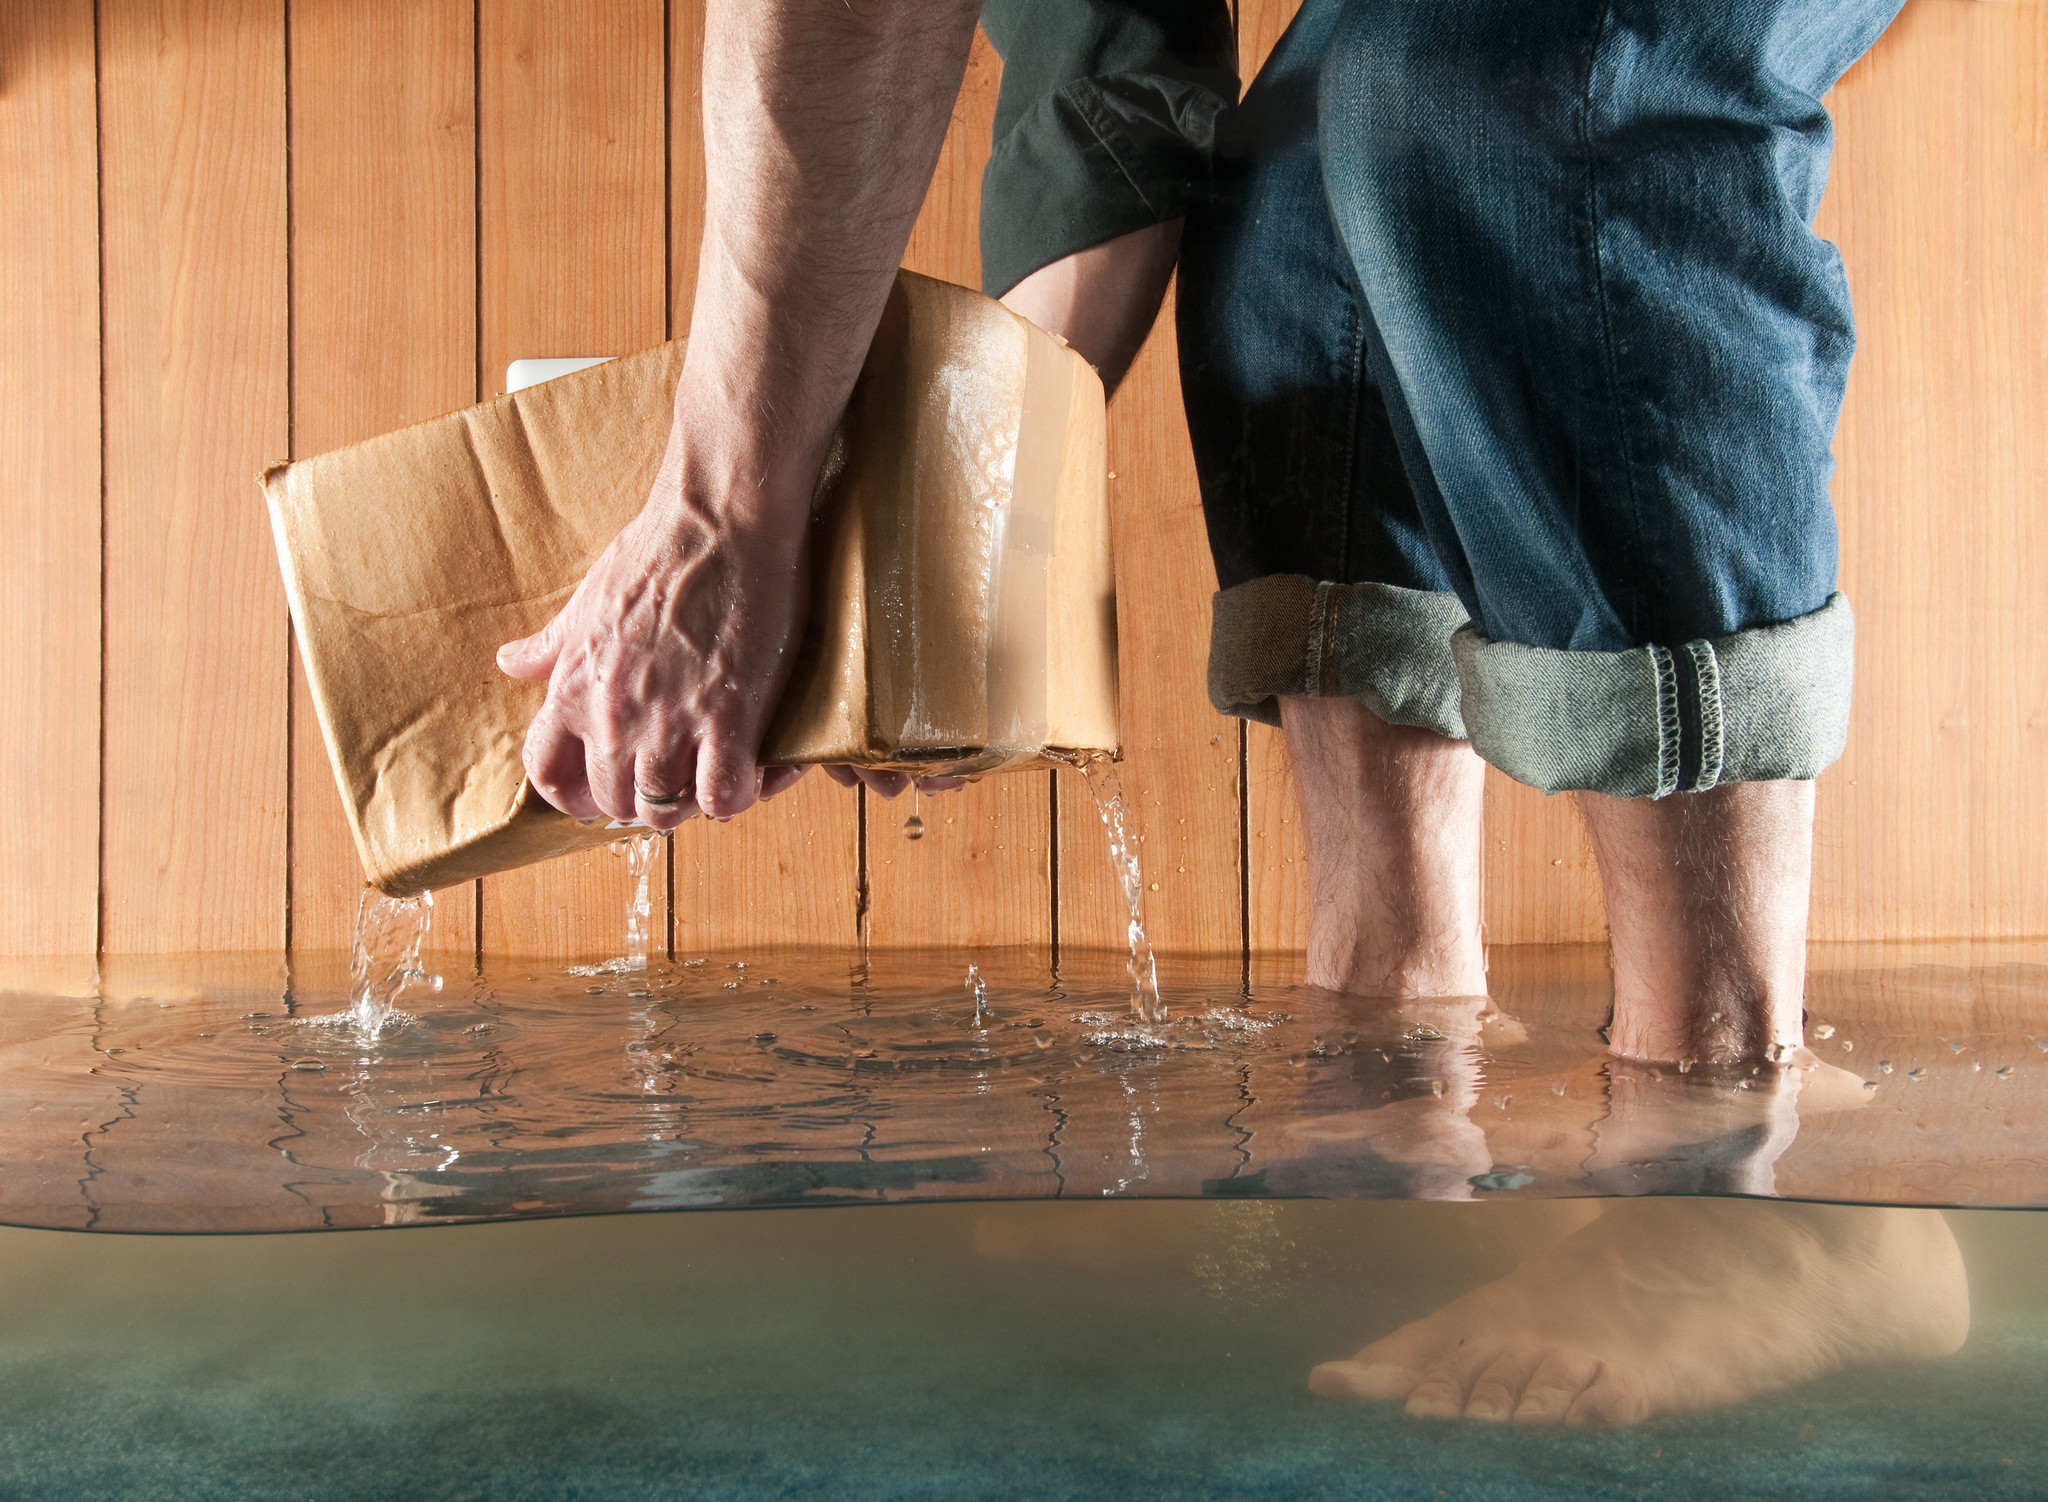 Have a flooded basement? You're not alone; here's what you need to know